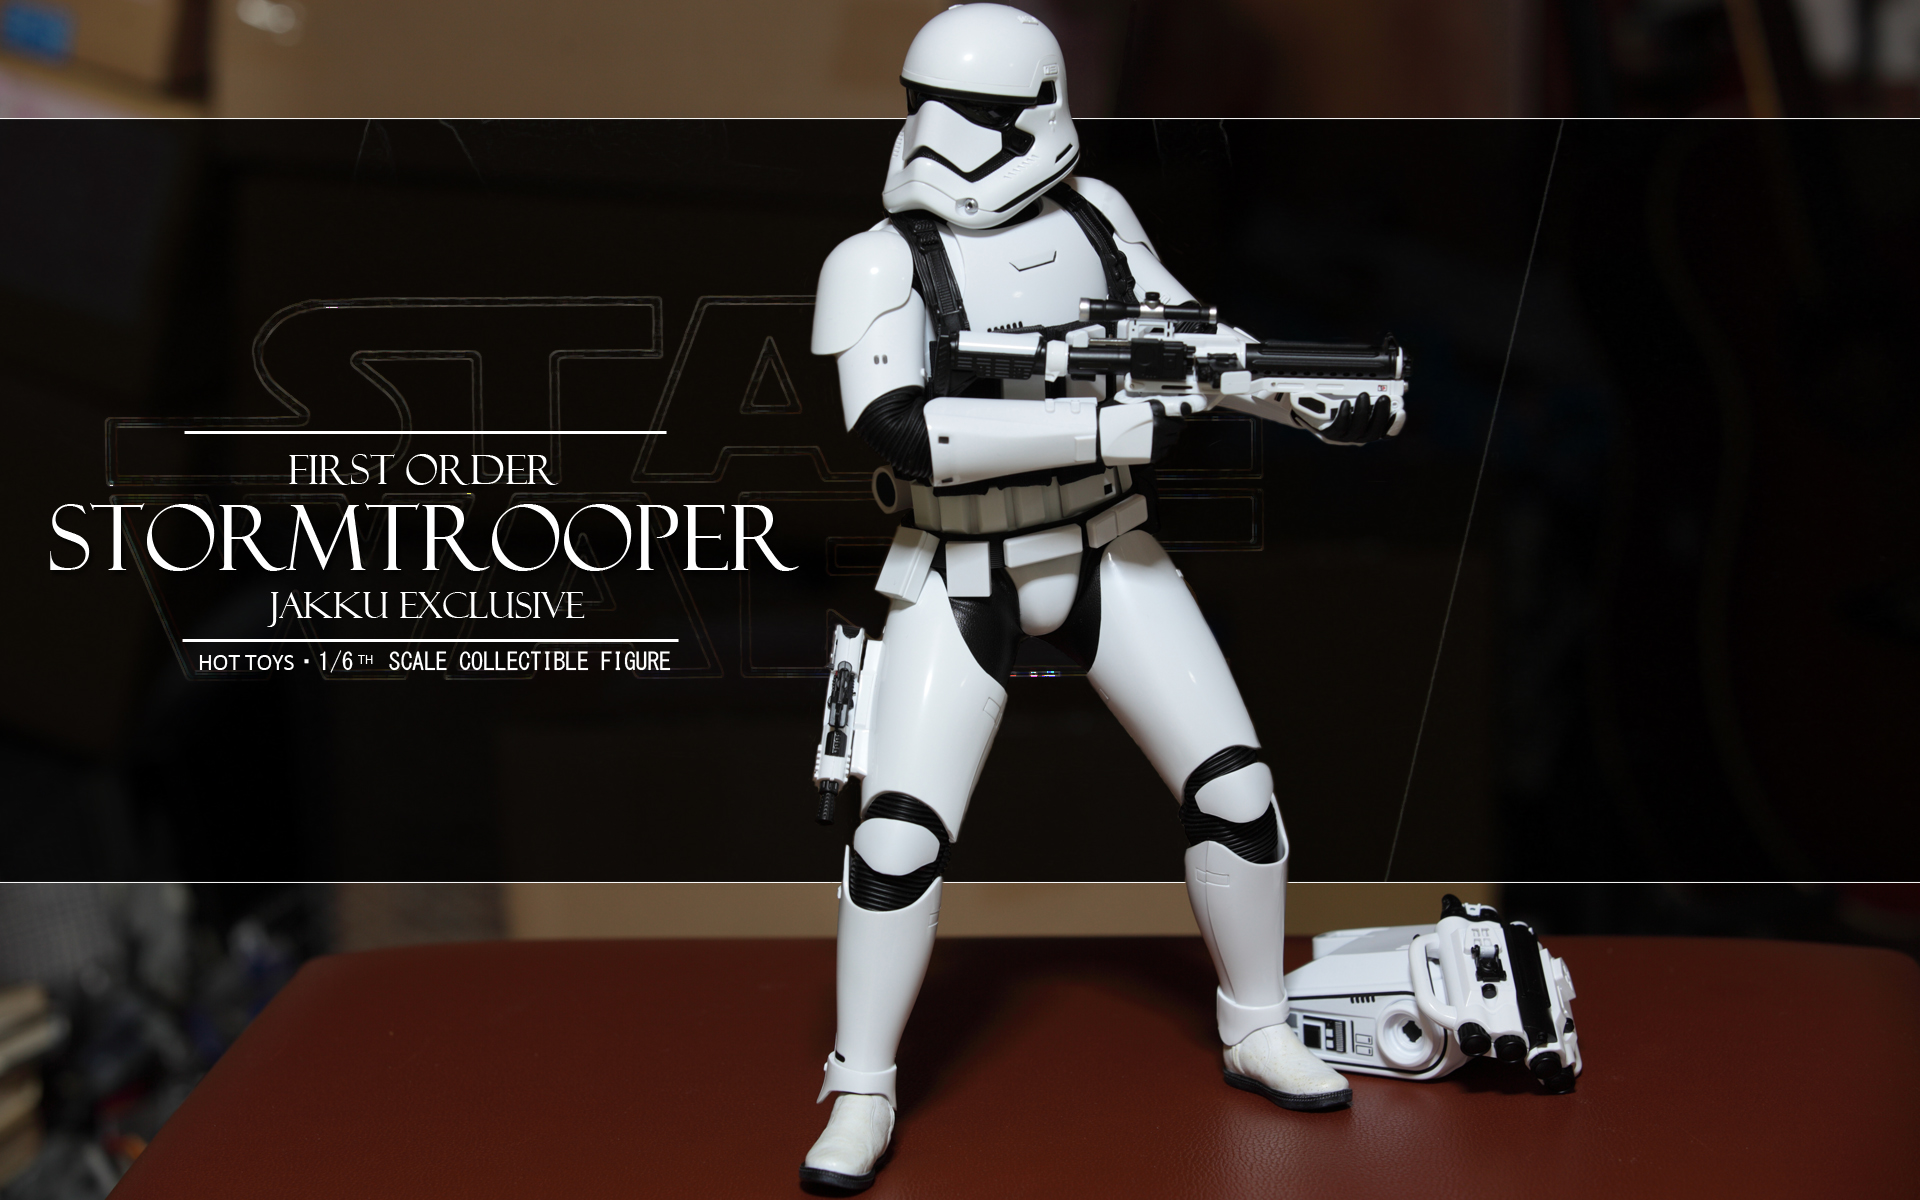 hottoys-star-wars-the-force-awakens-first-order-stormtrooper-jakku-picture01